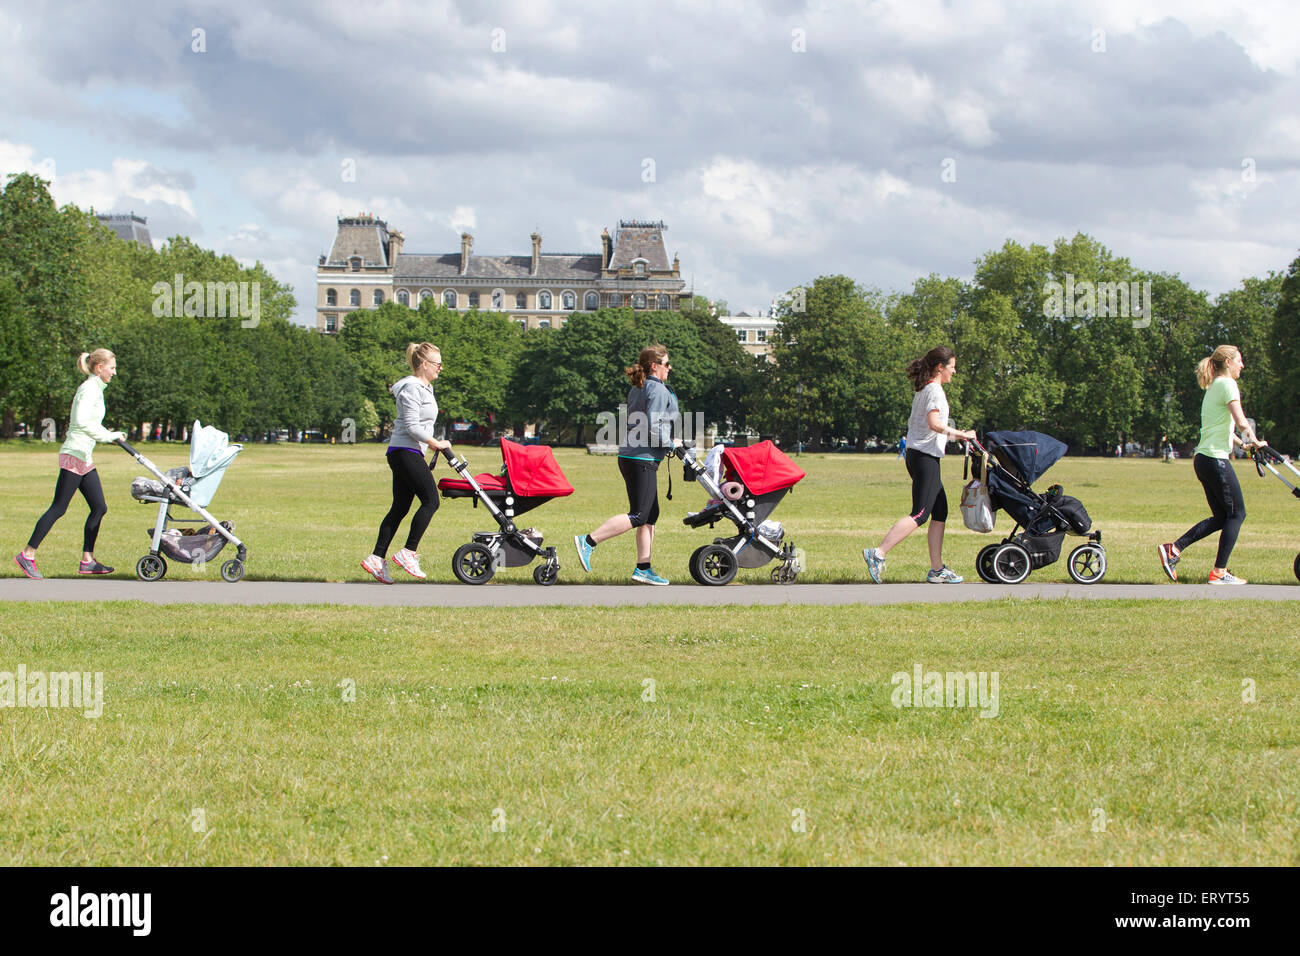 Mother's taking an exercise class with baby and toddler's in their buggies at a park in London, England, - Stock Image